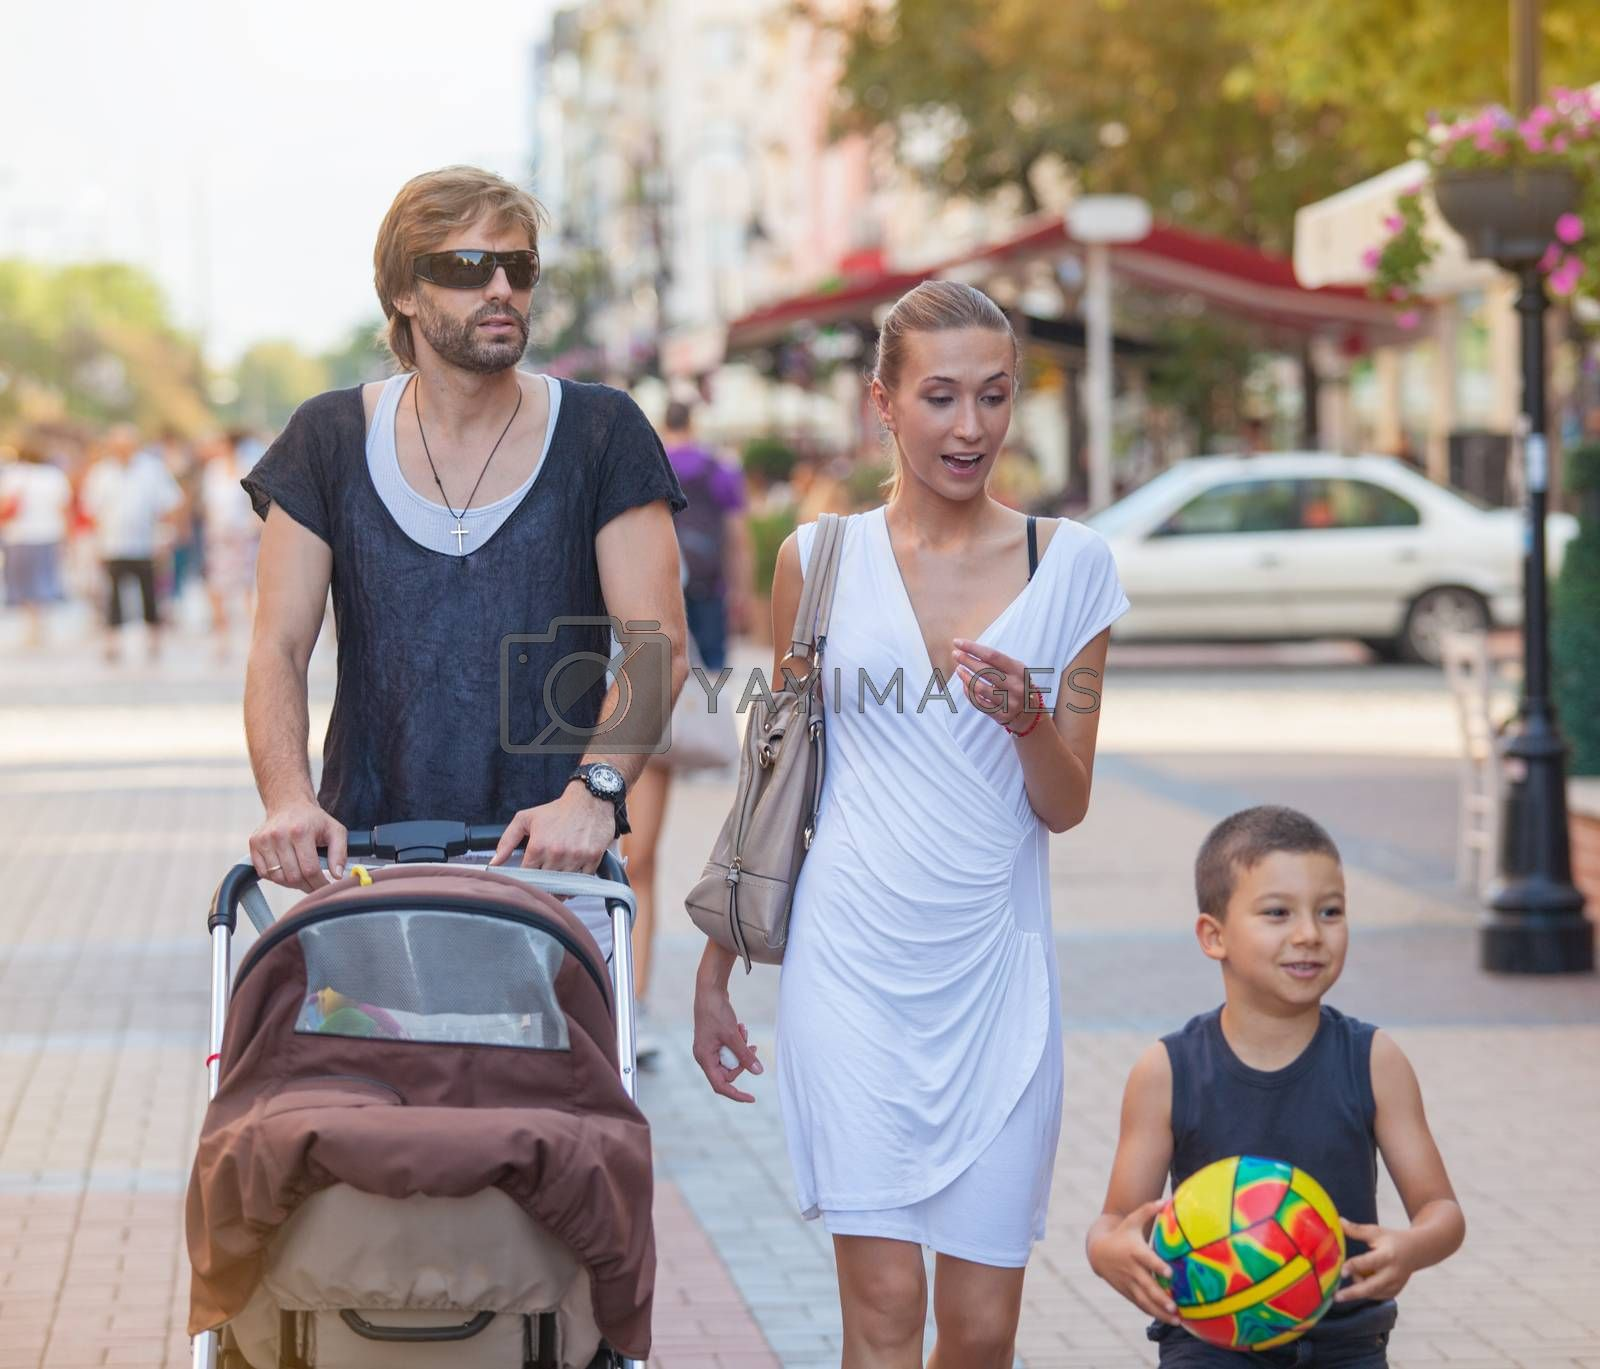 A family of four is taking time together with a walk downtown in a sunny summer day.